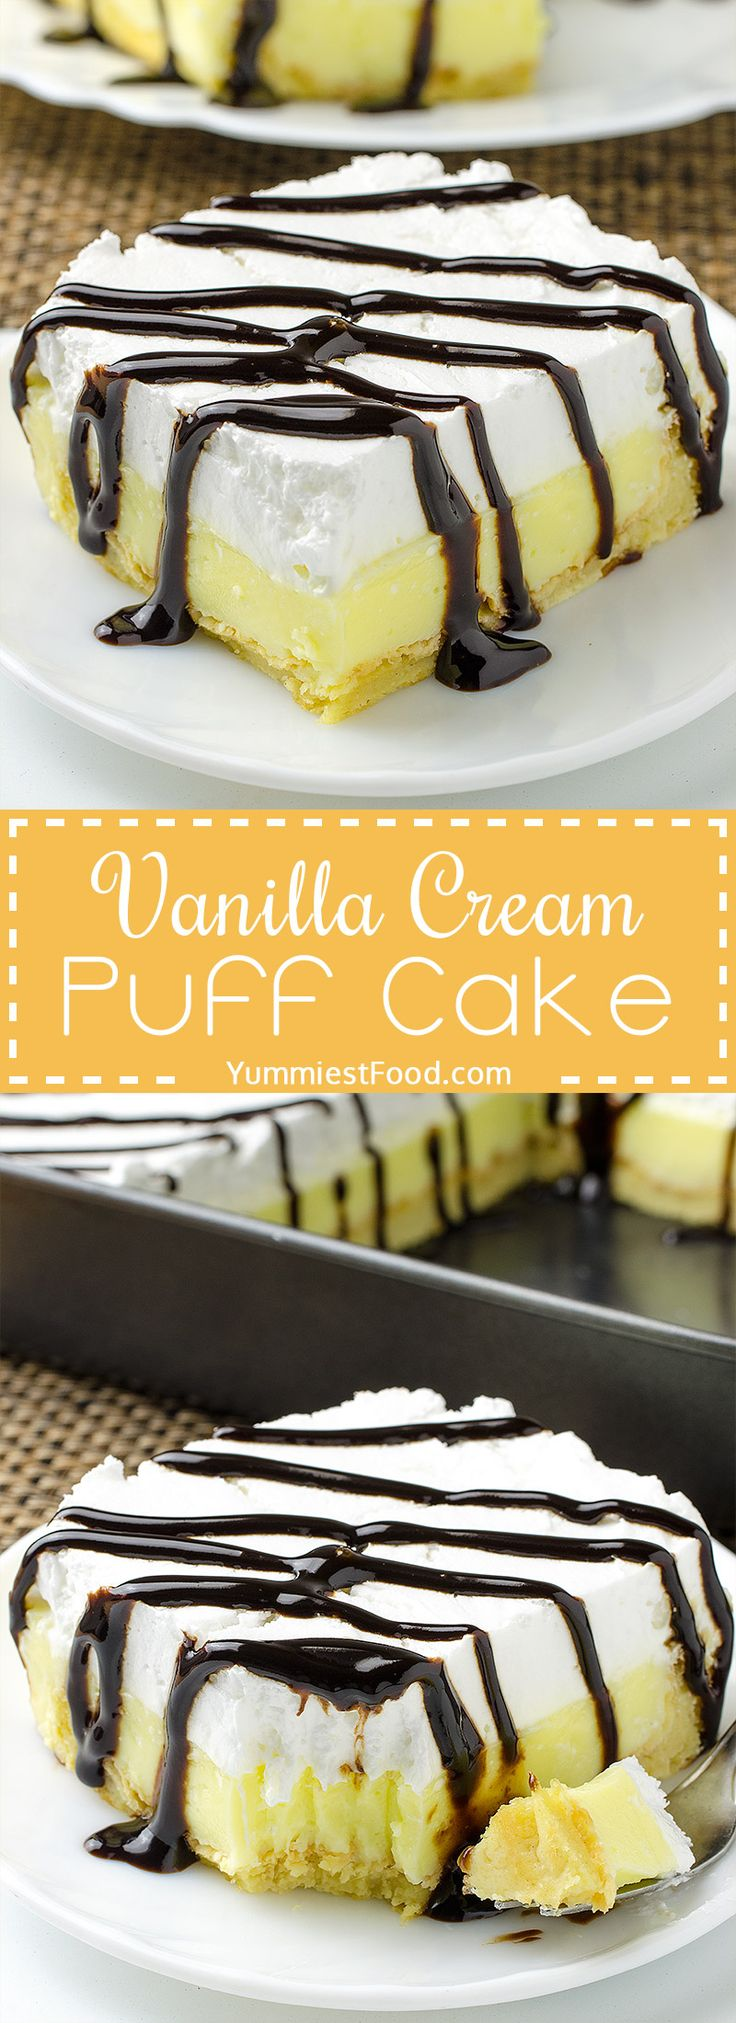 Vanilla Cream Puff Cake or Eclair Cake - so easy, quick and creamy! Perfect combination with vanilla and chocolate